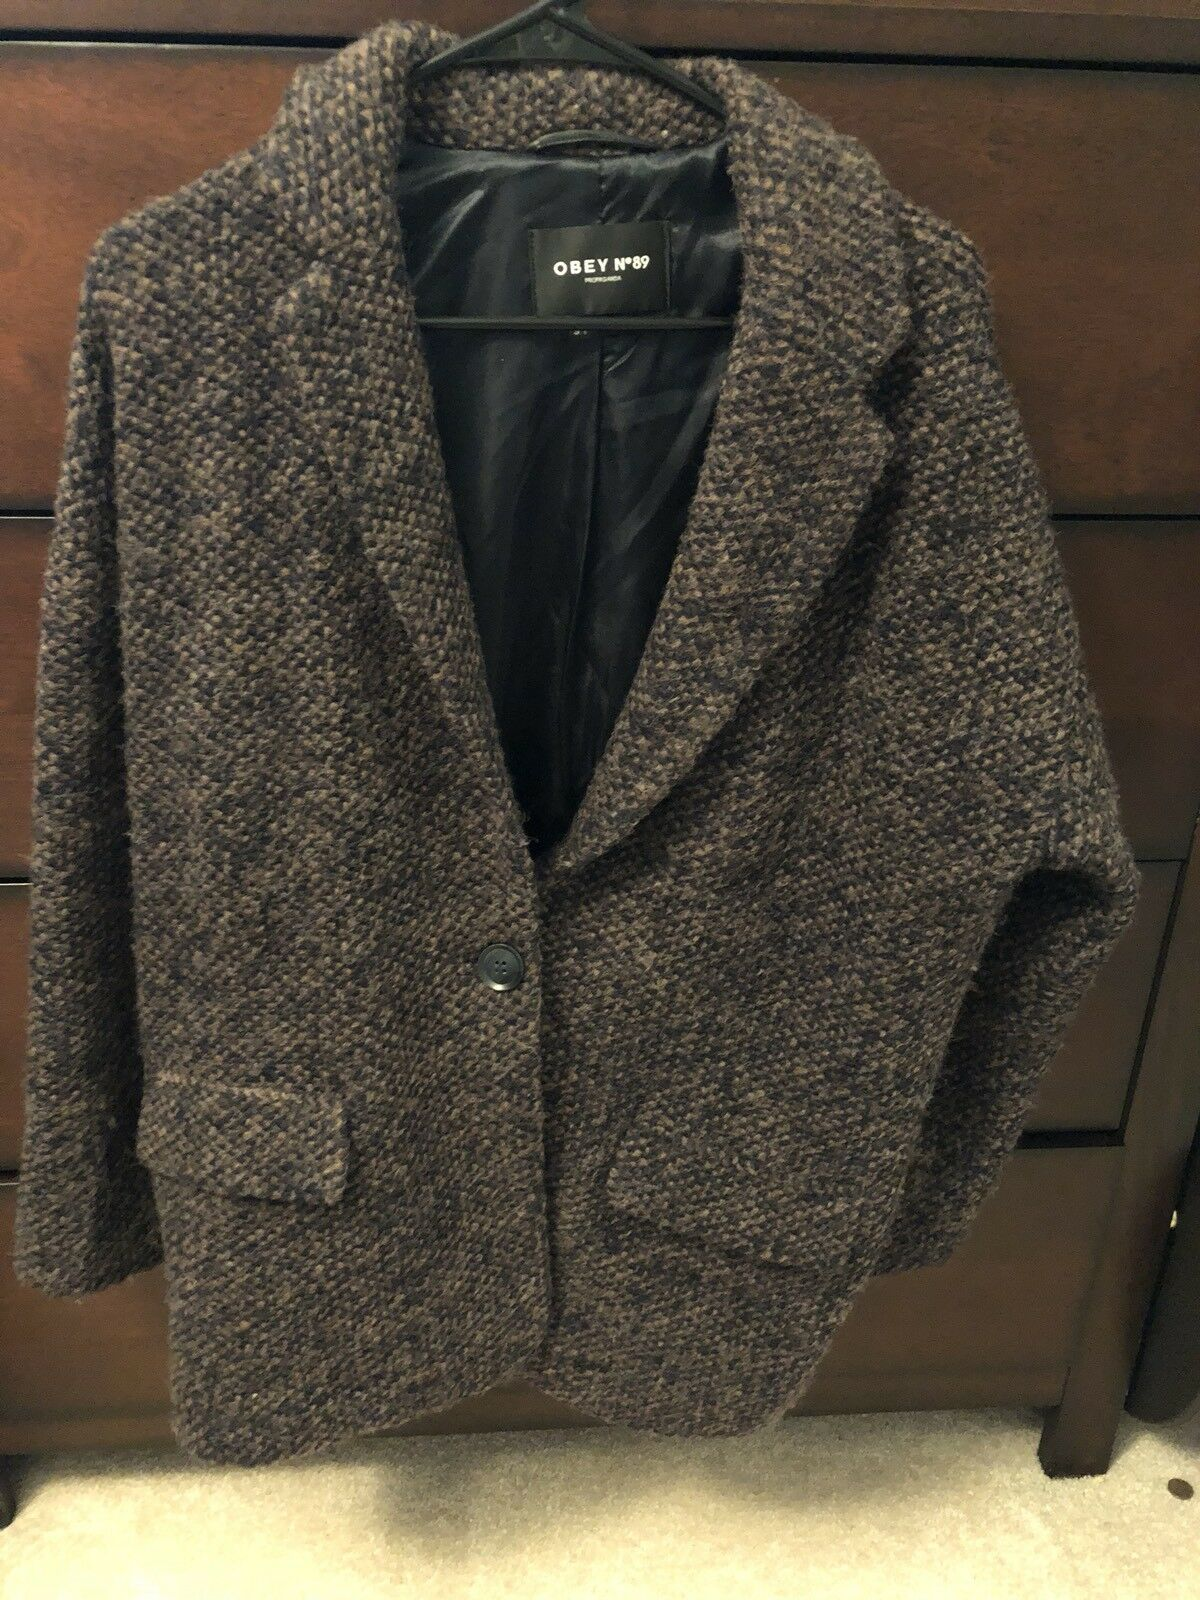 Obey Women's N89 Knit Wool Sweater Cardigan Brown Size S Small